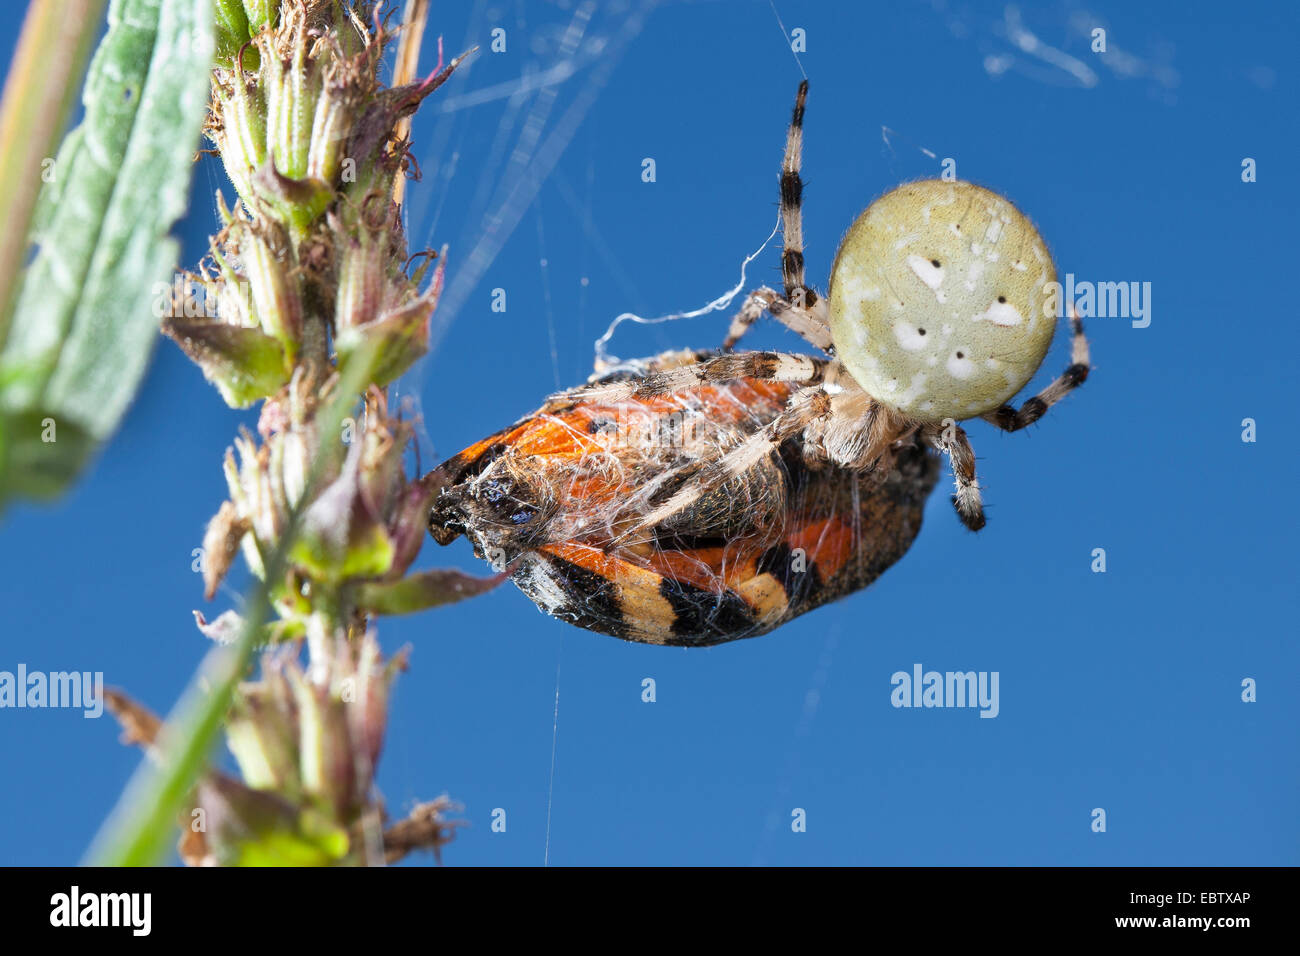 fourspotted orbweaver (Araneus quadratus), caught a butterfly, Germany - Stock Image